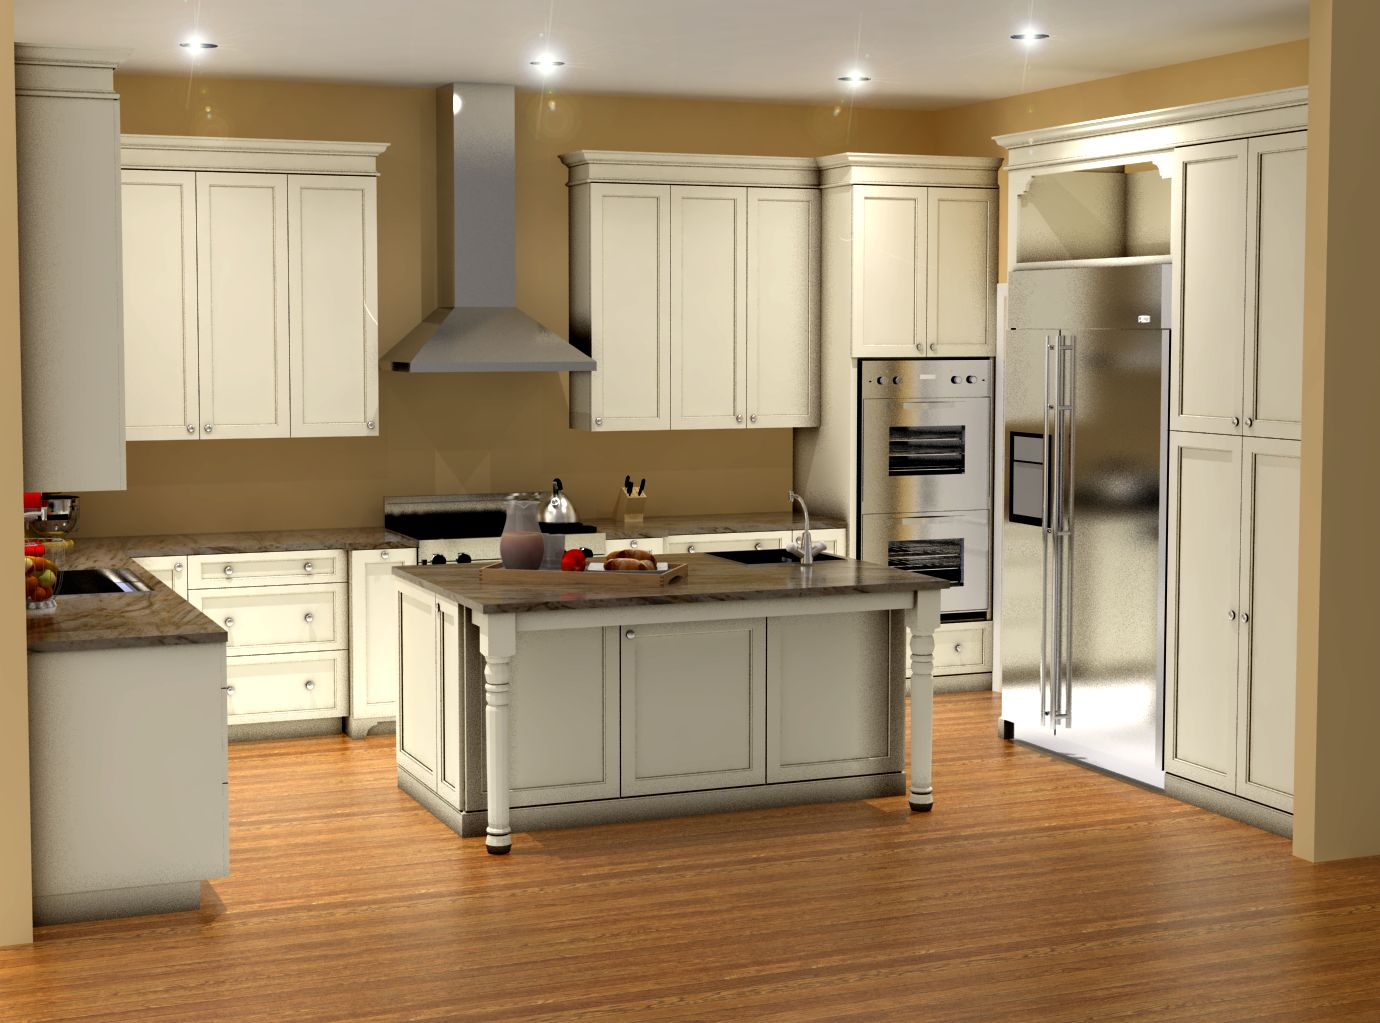 Traditional white kitchen design  3D rendering  Nick